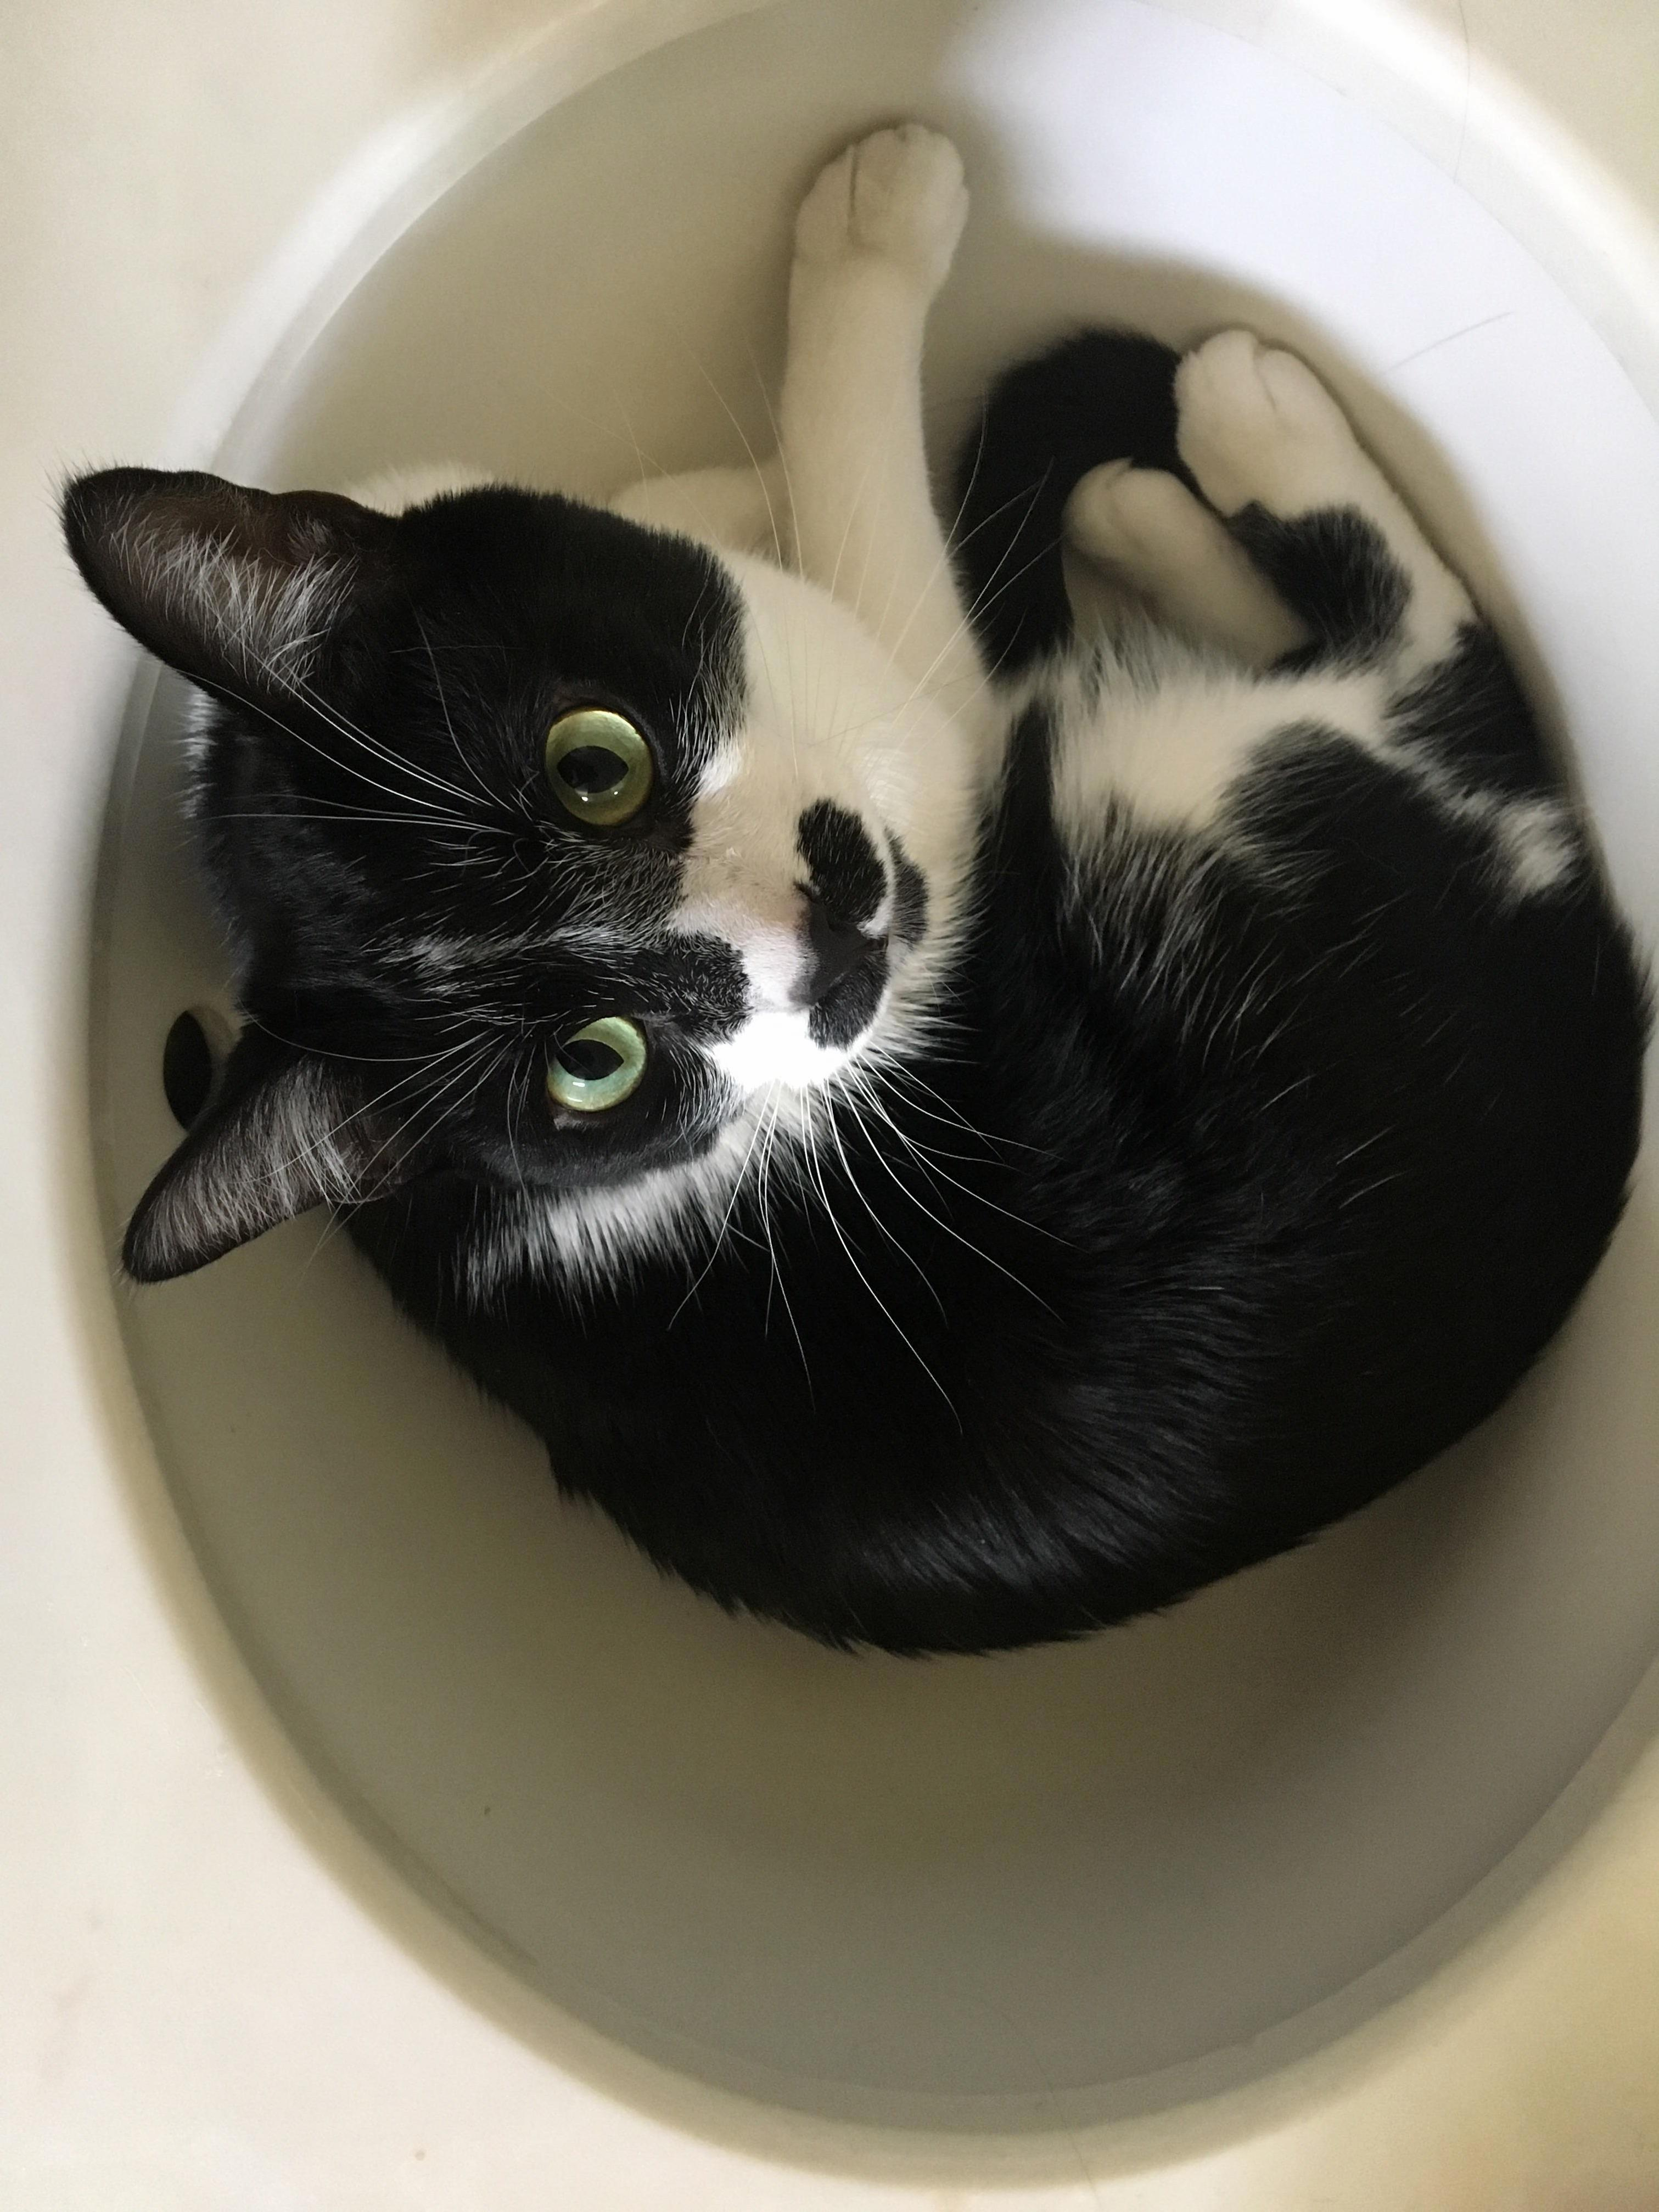 My cat sushi just chilling in the sink